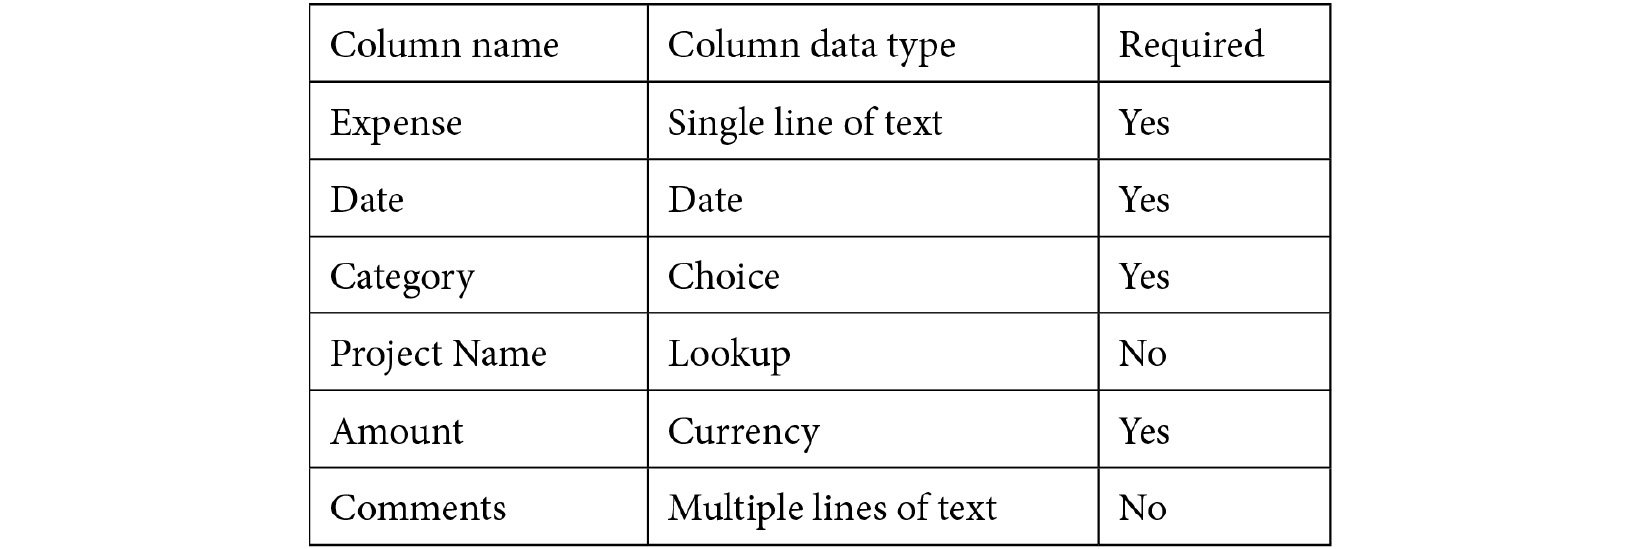 Figure 1.11 – Expenses list columns